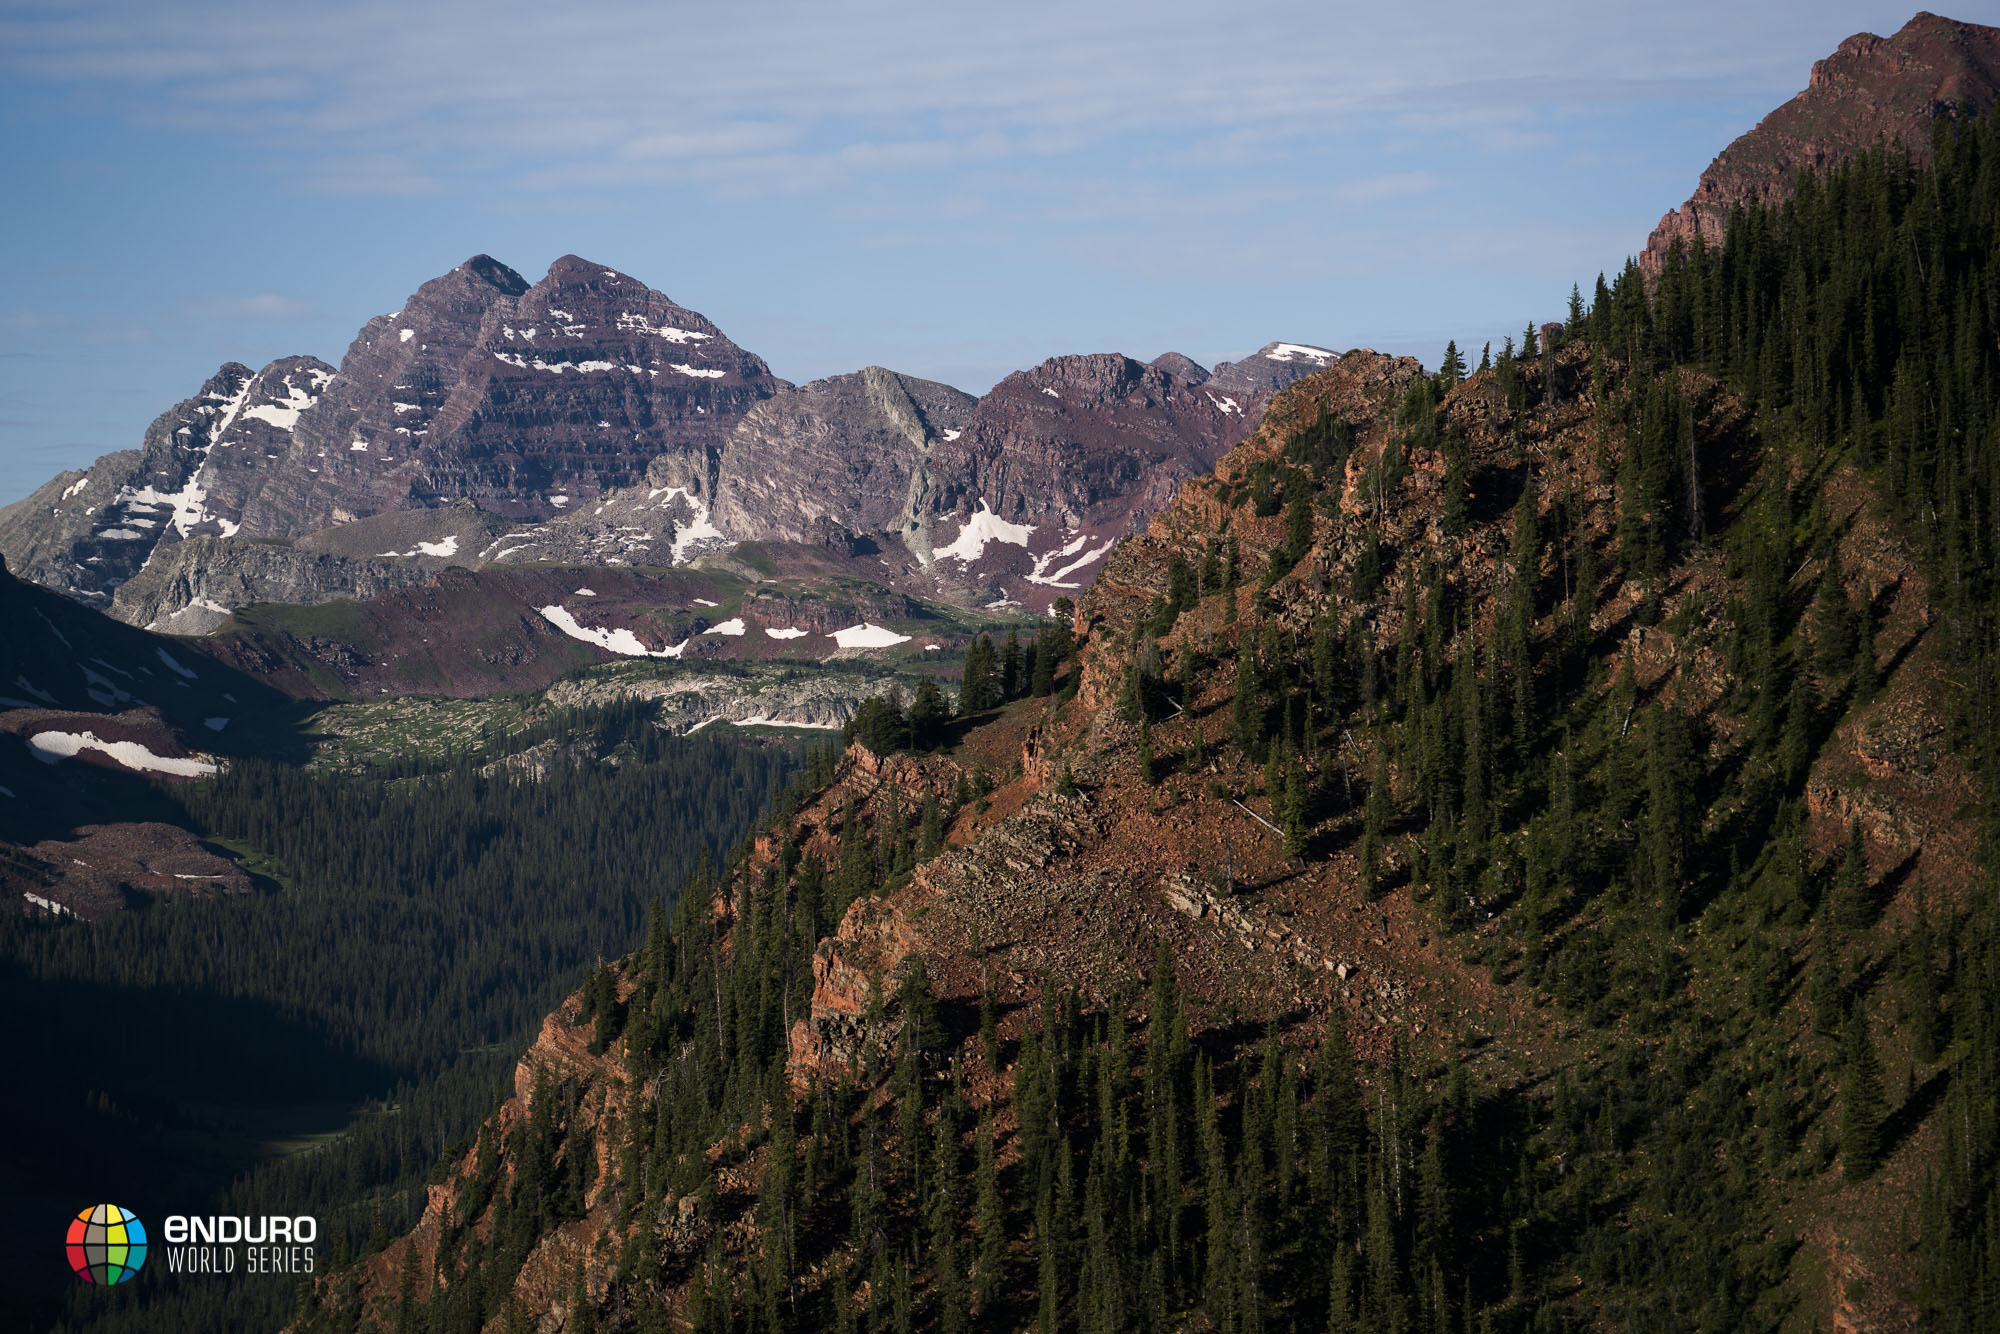 With clear weather at the top of the mountain the view of the Maroon bells was phenomenal